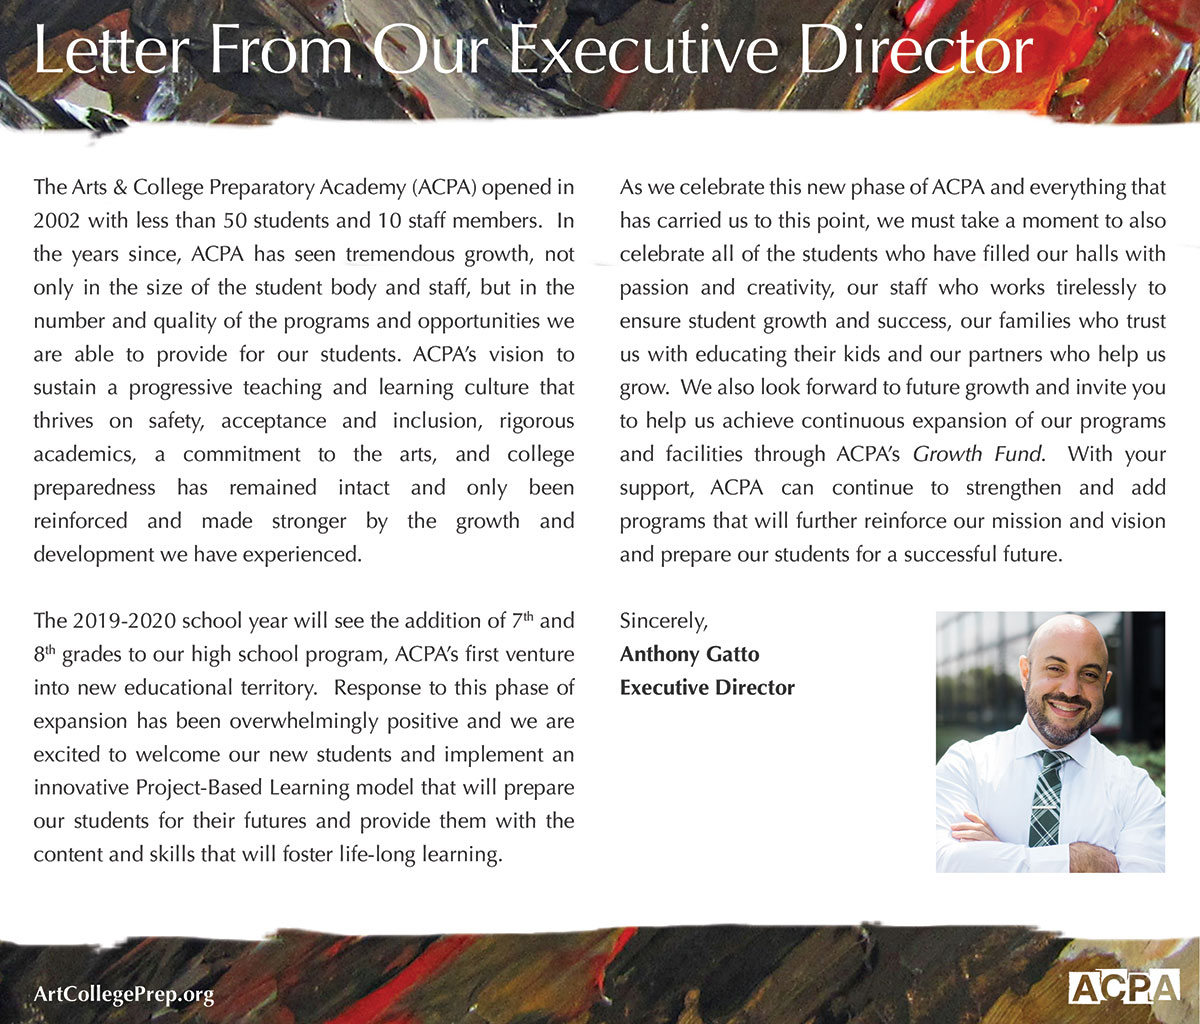 Letter from Our Executive Director ACPA Flyer Design